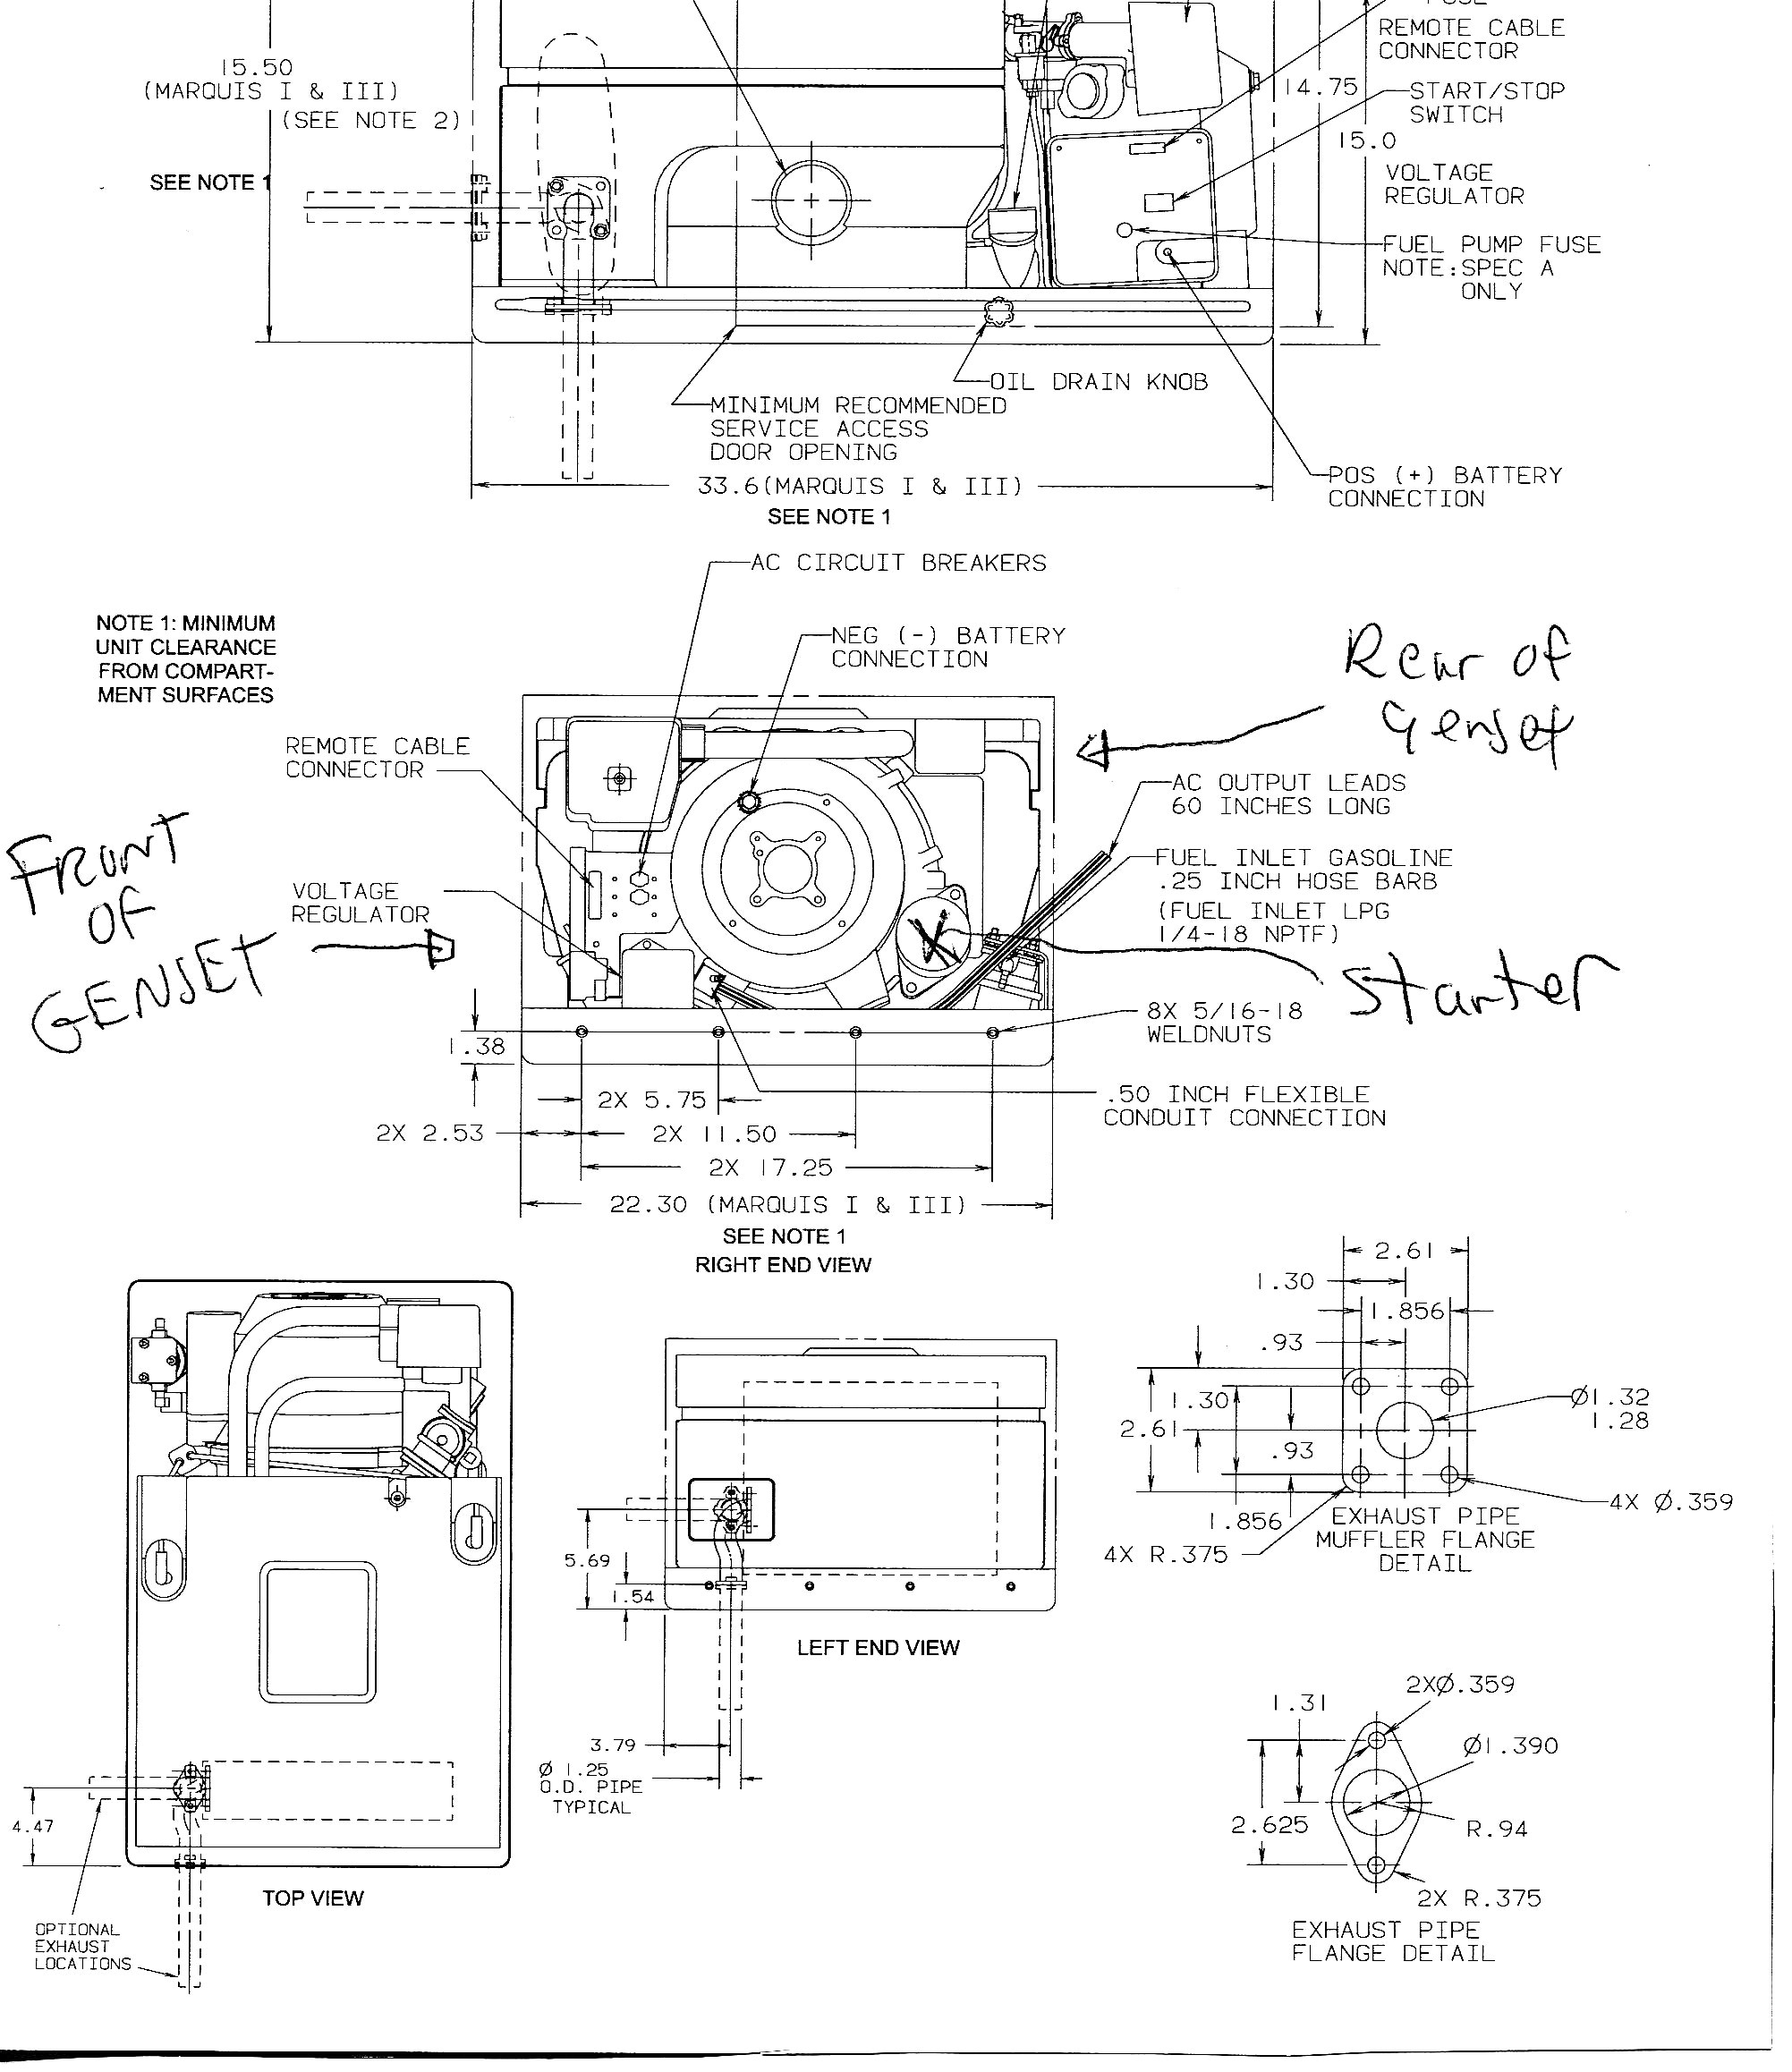 Genset Wiring Diagram | Wiring Diagram on olympian generator drawings, olympian generator fuel capacity, olympian generator specifications, olympian generator diagram, olympian generator installation manual, olympian generator d200p4 2001, electric generator schematic,